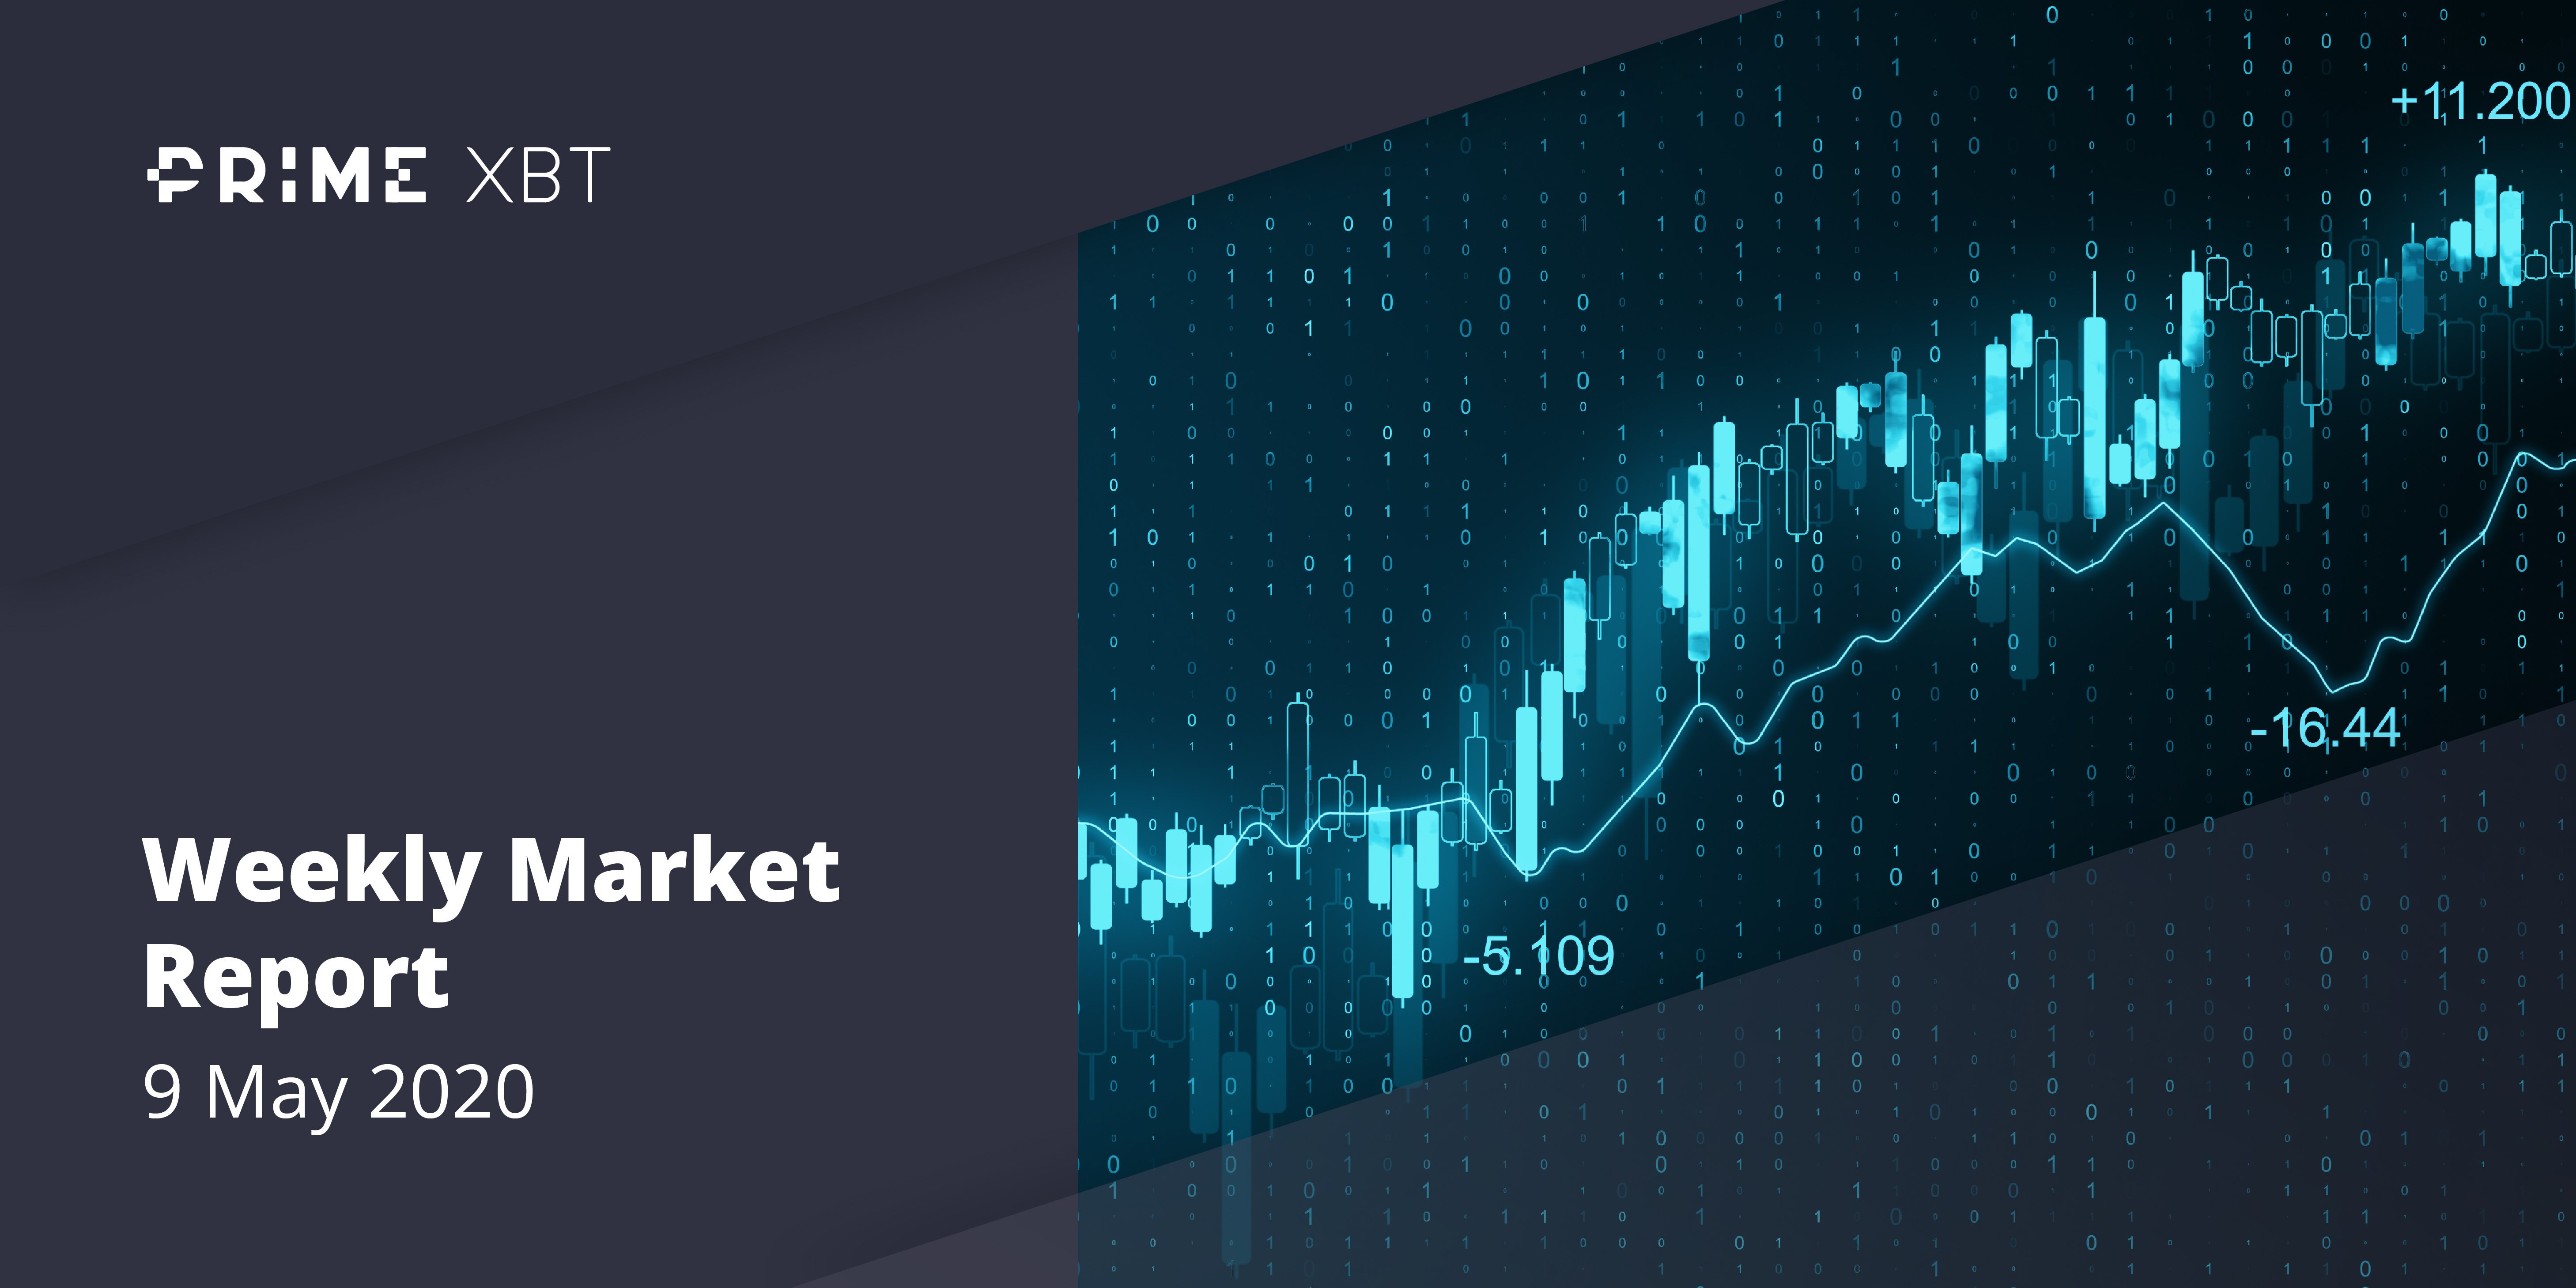 9.05.20 - Crypto Market Report: Bitcoin Builds in Anticipation of Halving as a Greedy Market Returns with Institutional Interest